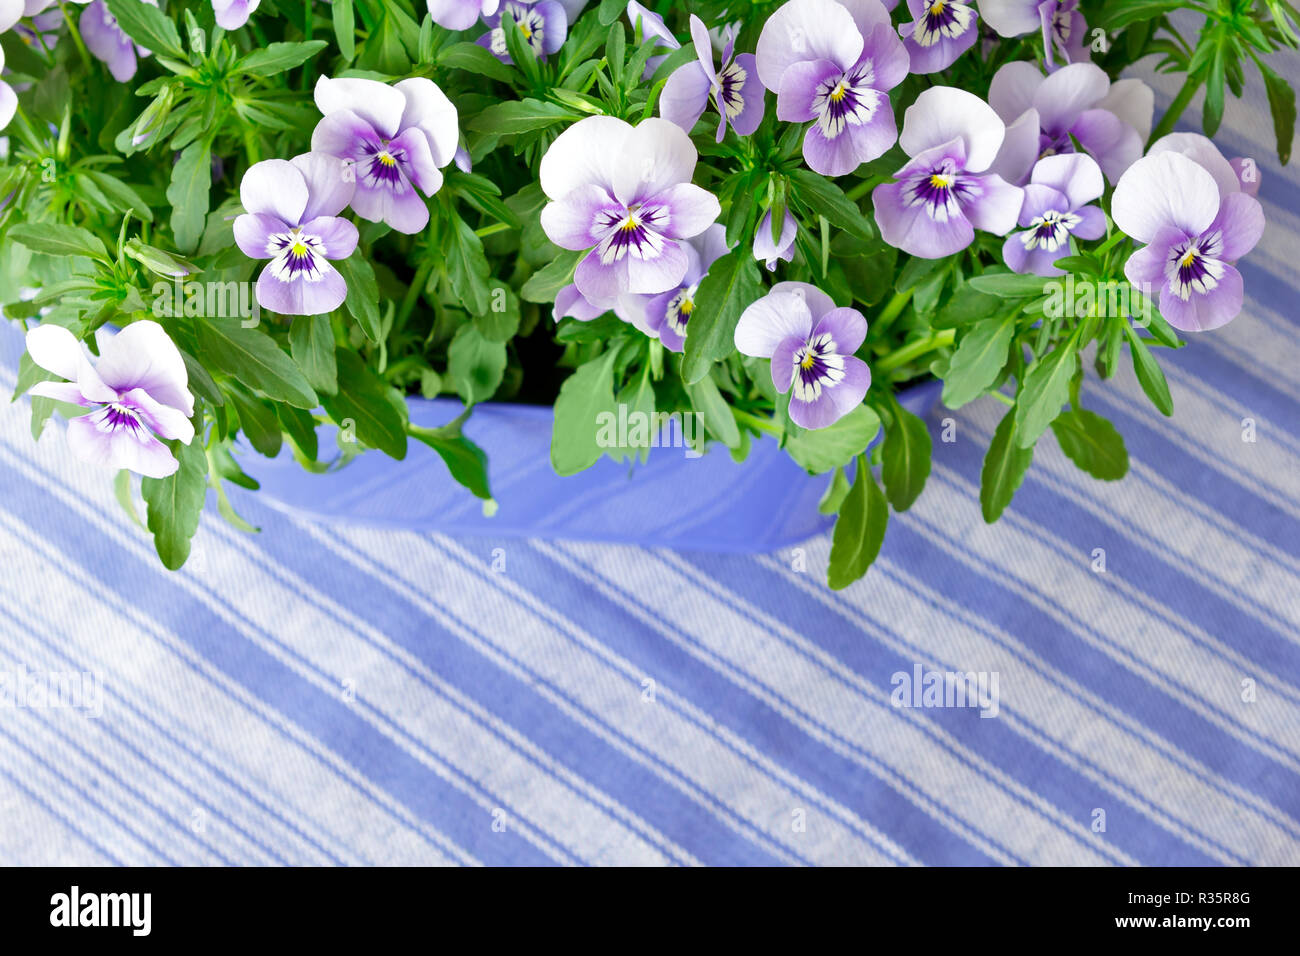 Pansy plants with lots of flowers in shades of lilac, violet and blue against a blue striped background, copy or text space Stock Photo